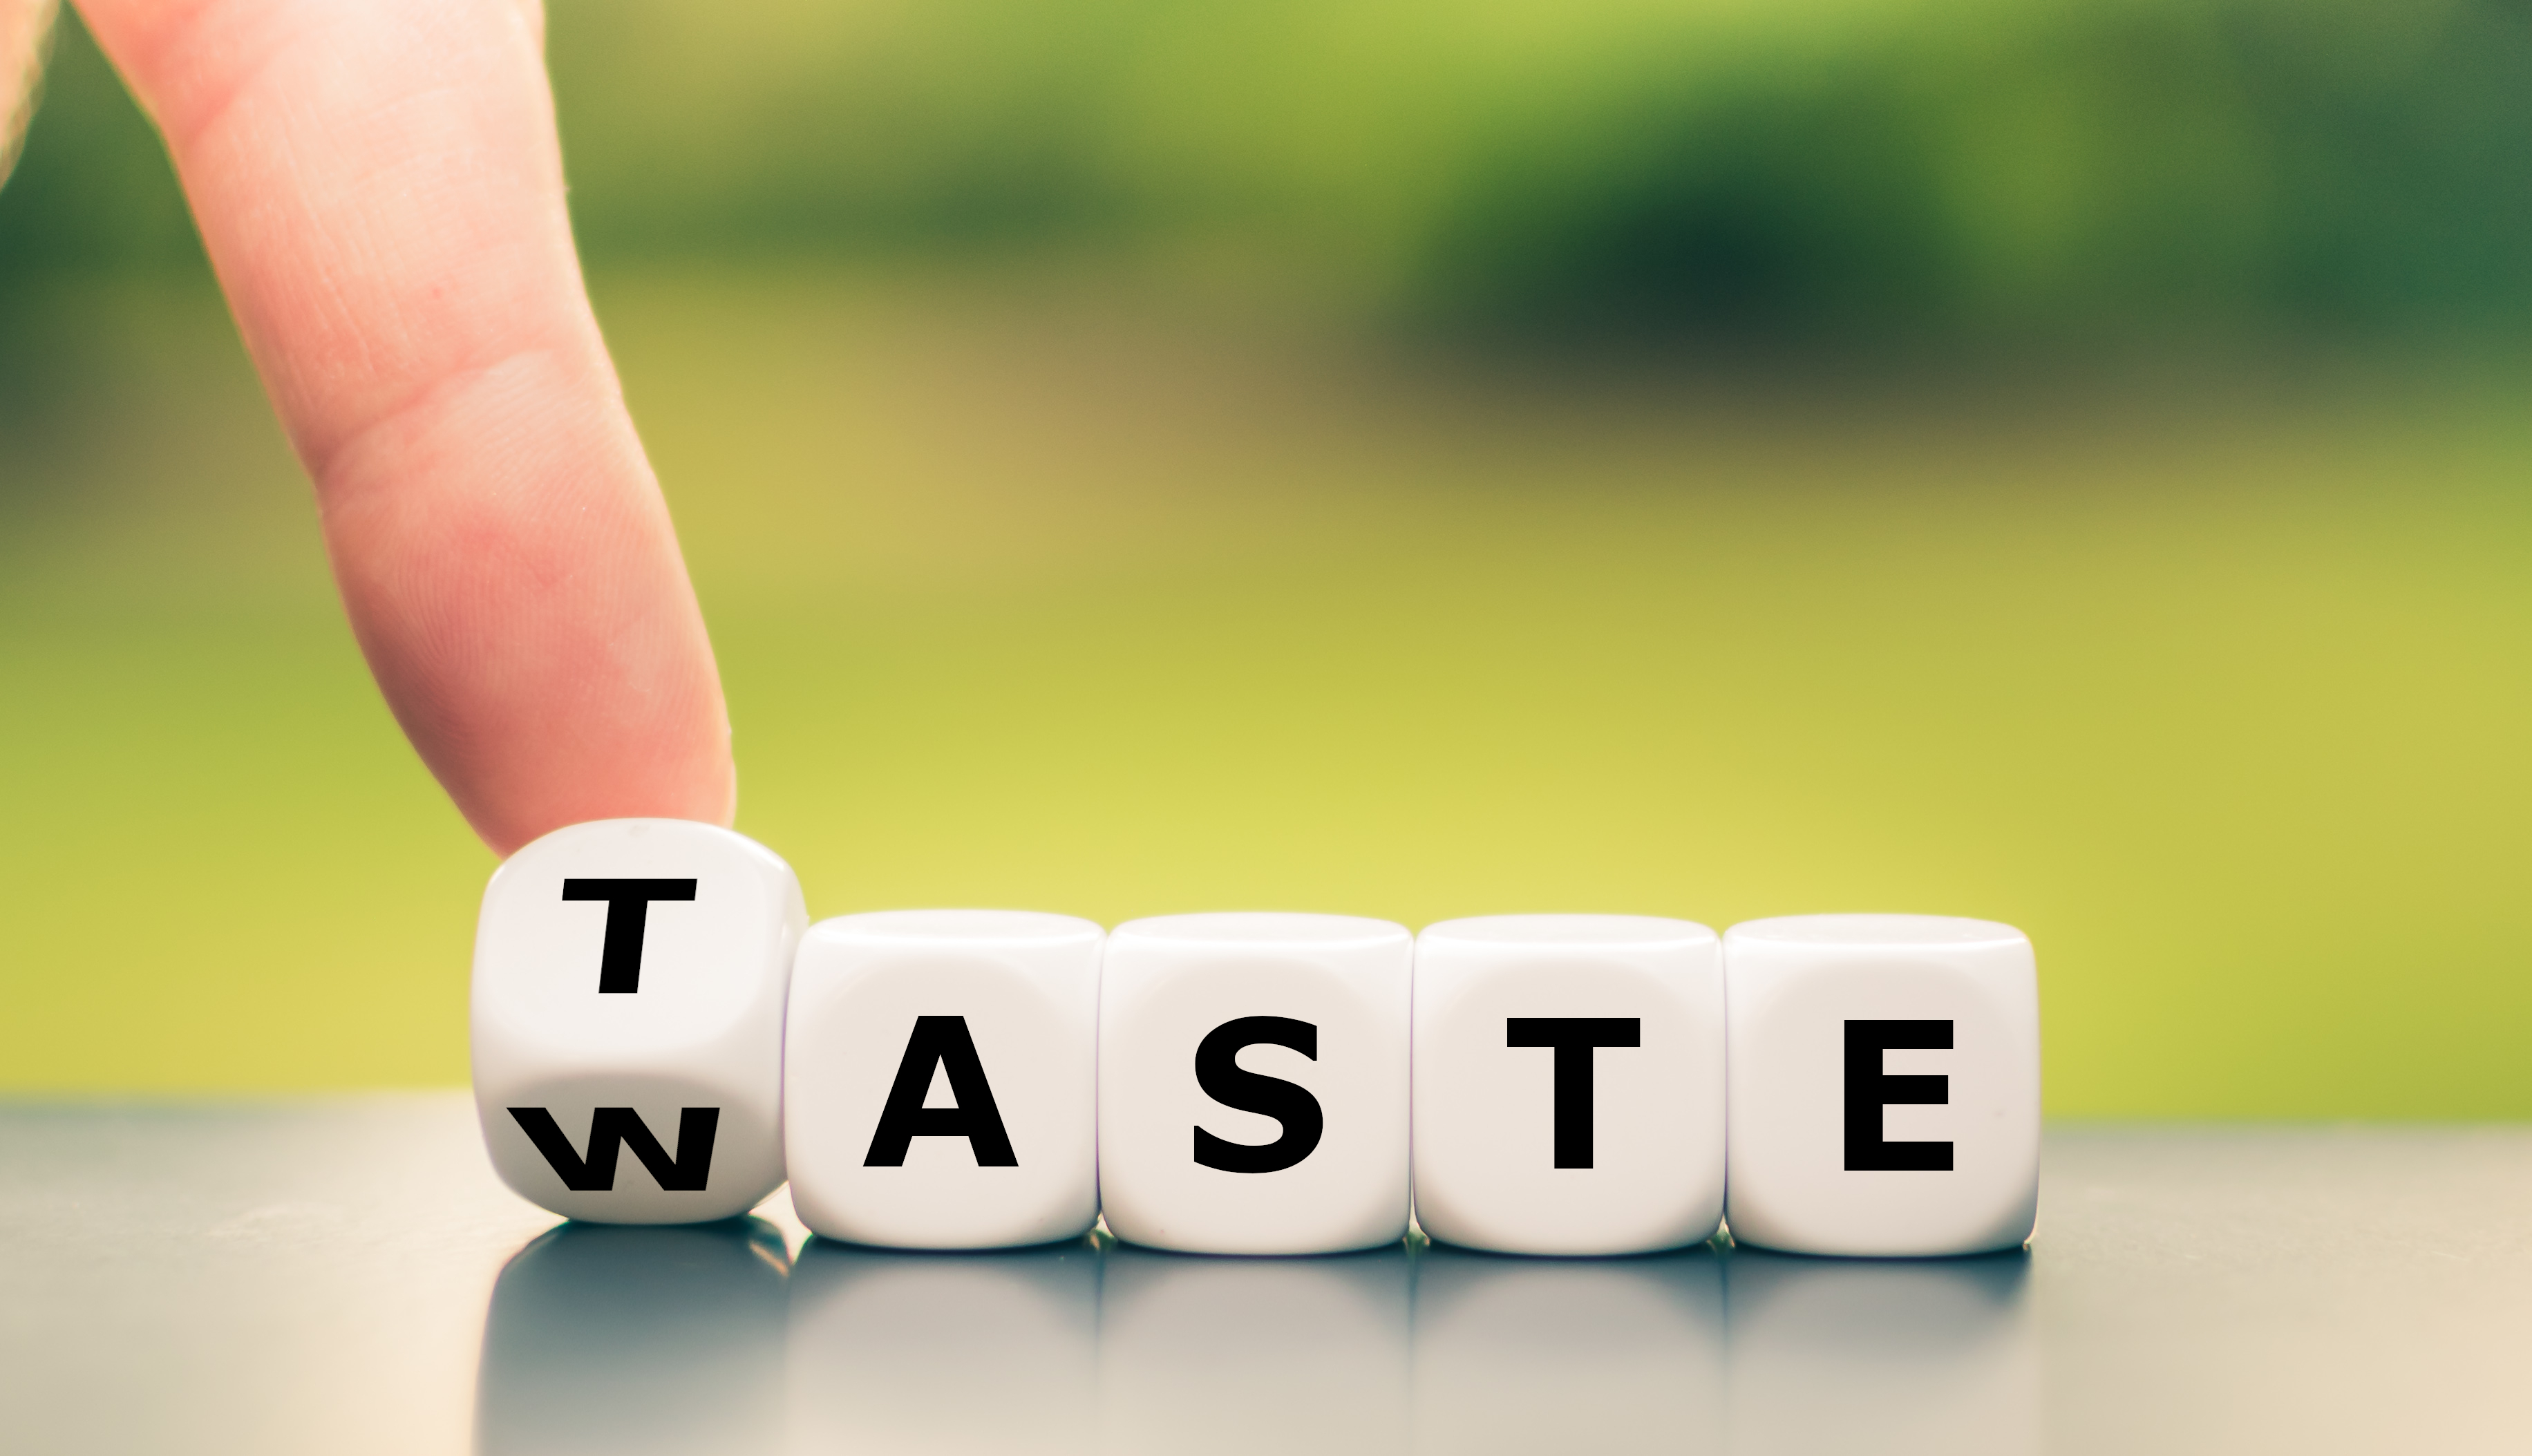 """dumpster diving - someone flicking over a dice to make """"waste"""" say """"taste"""""""